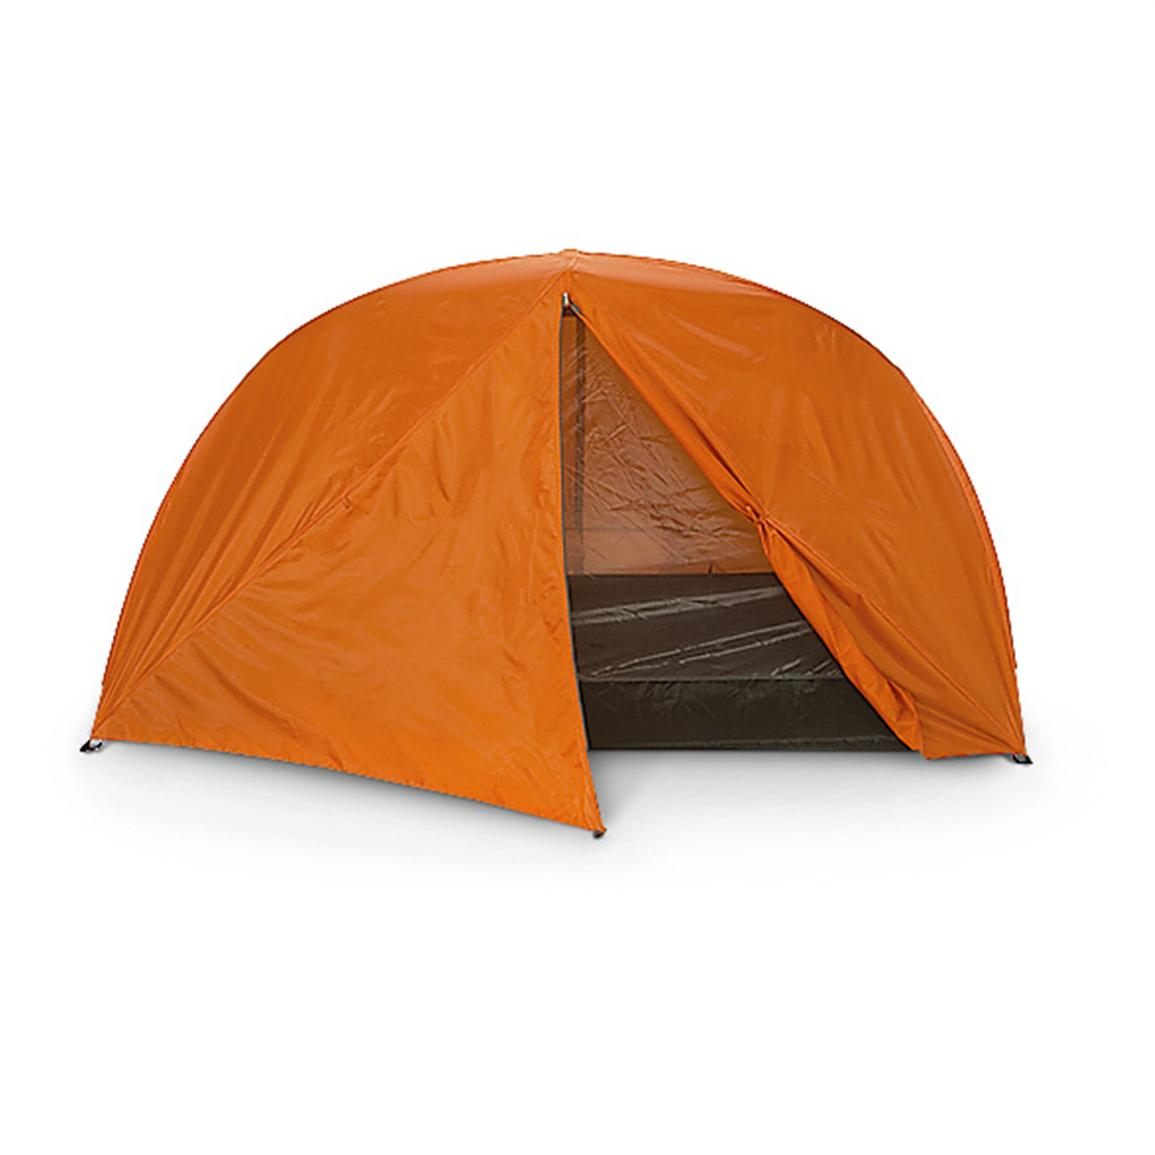 Stansport Starlite II Backpacking Tent, With Rainfly